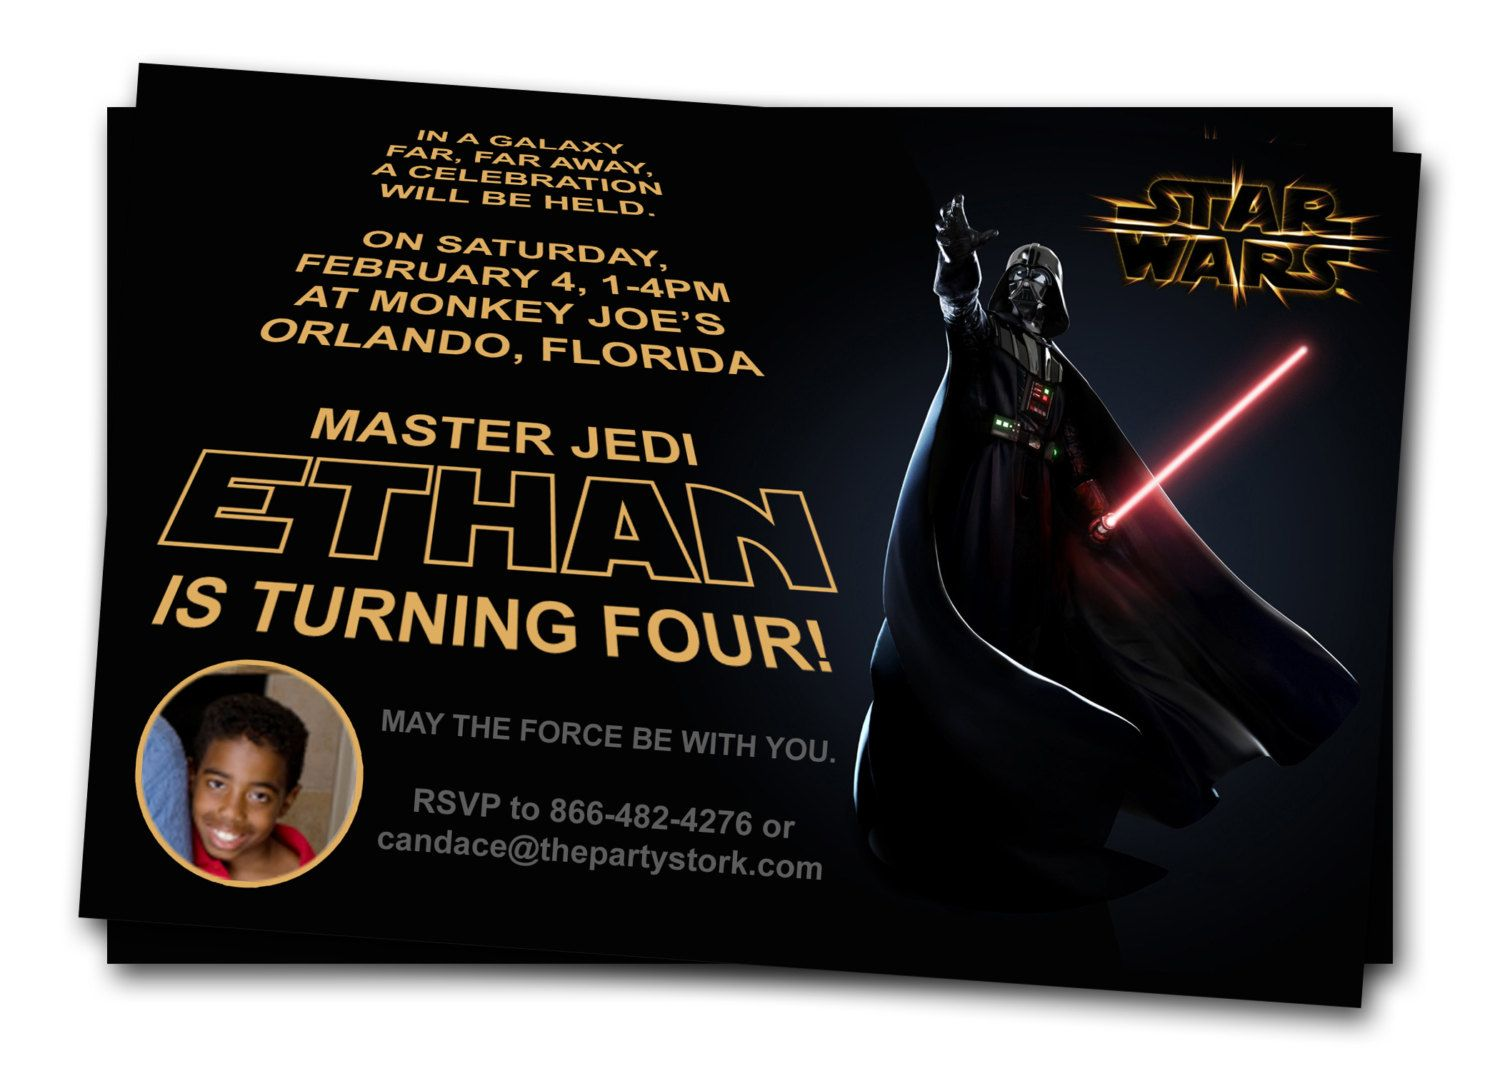 78 Best images about Star Wars party on Pinterest   Invitation ...